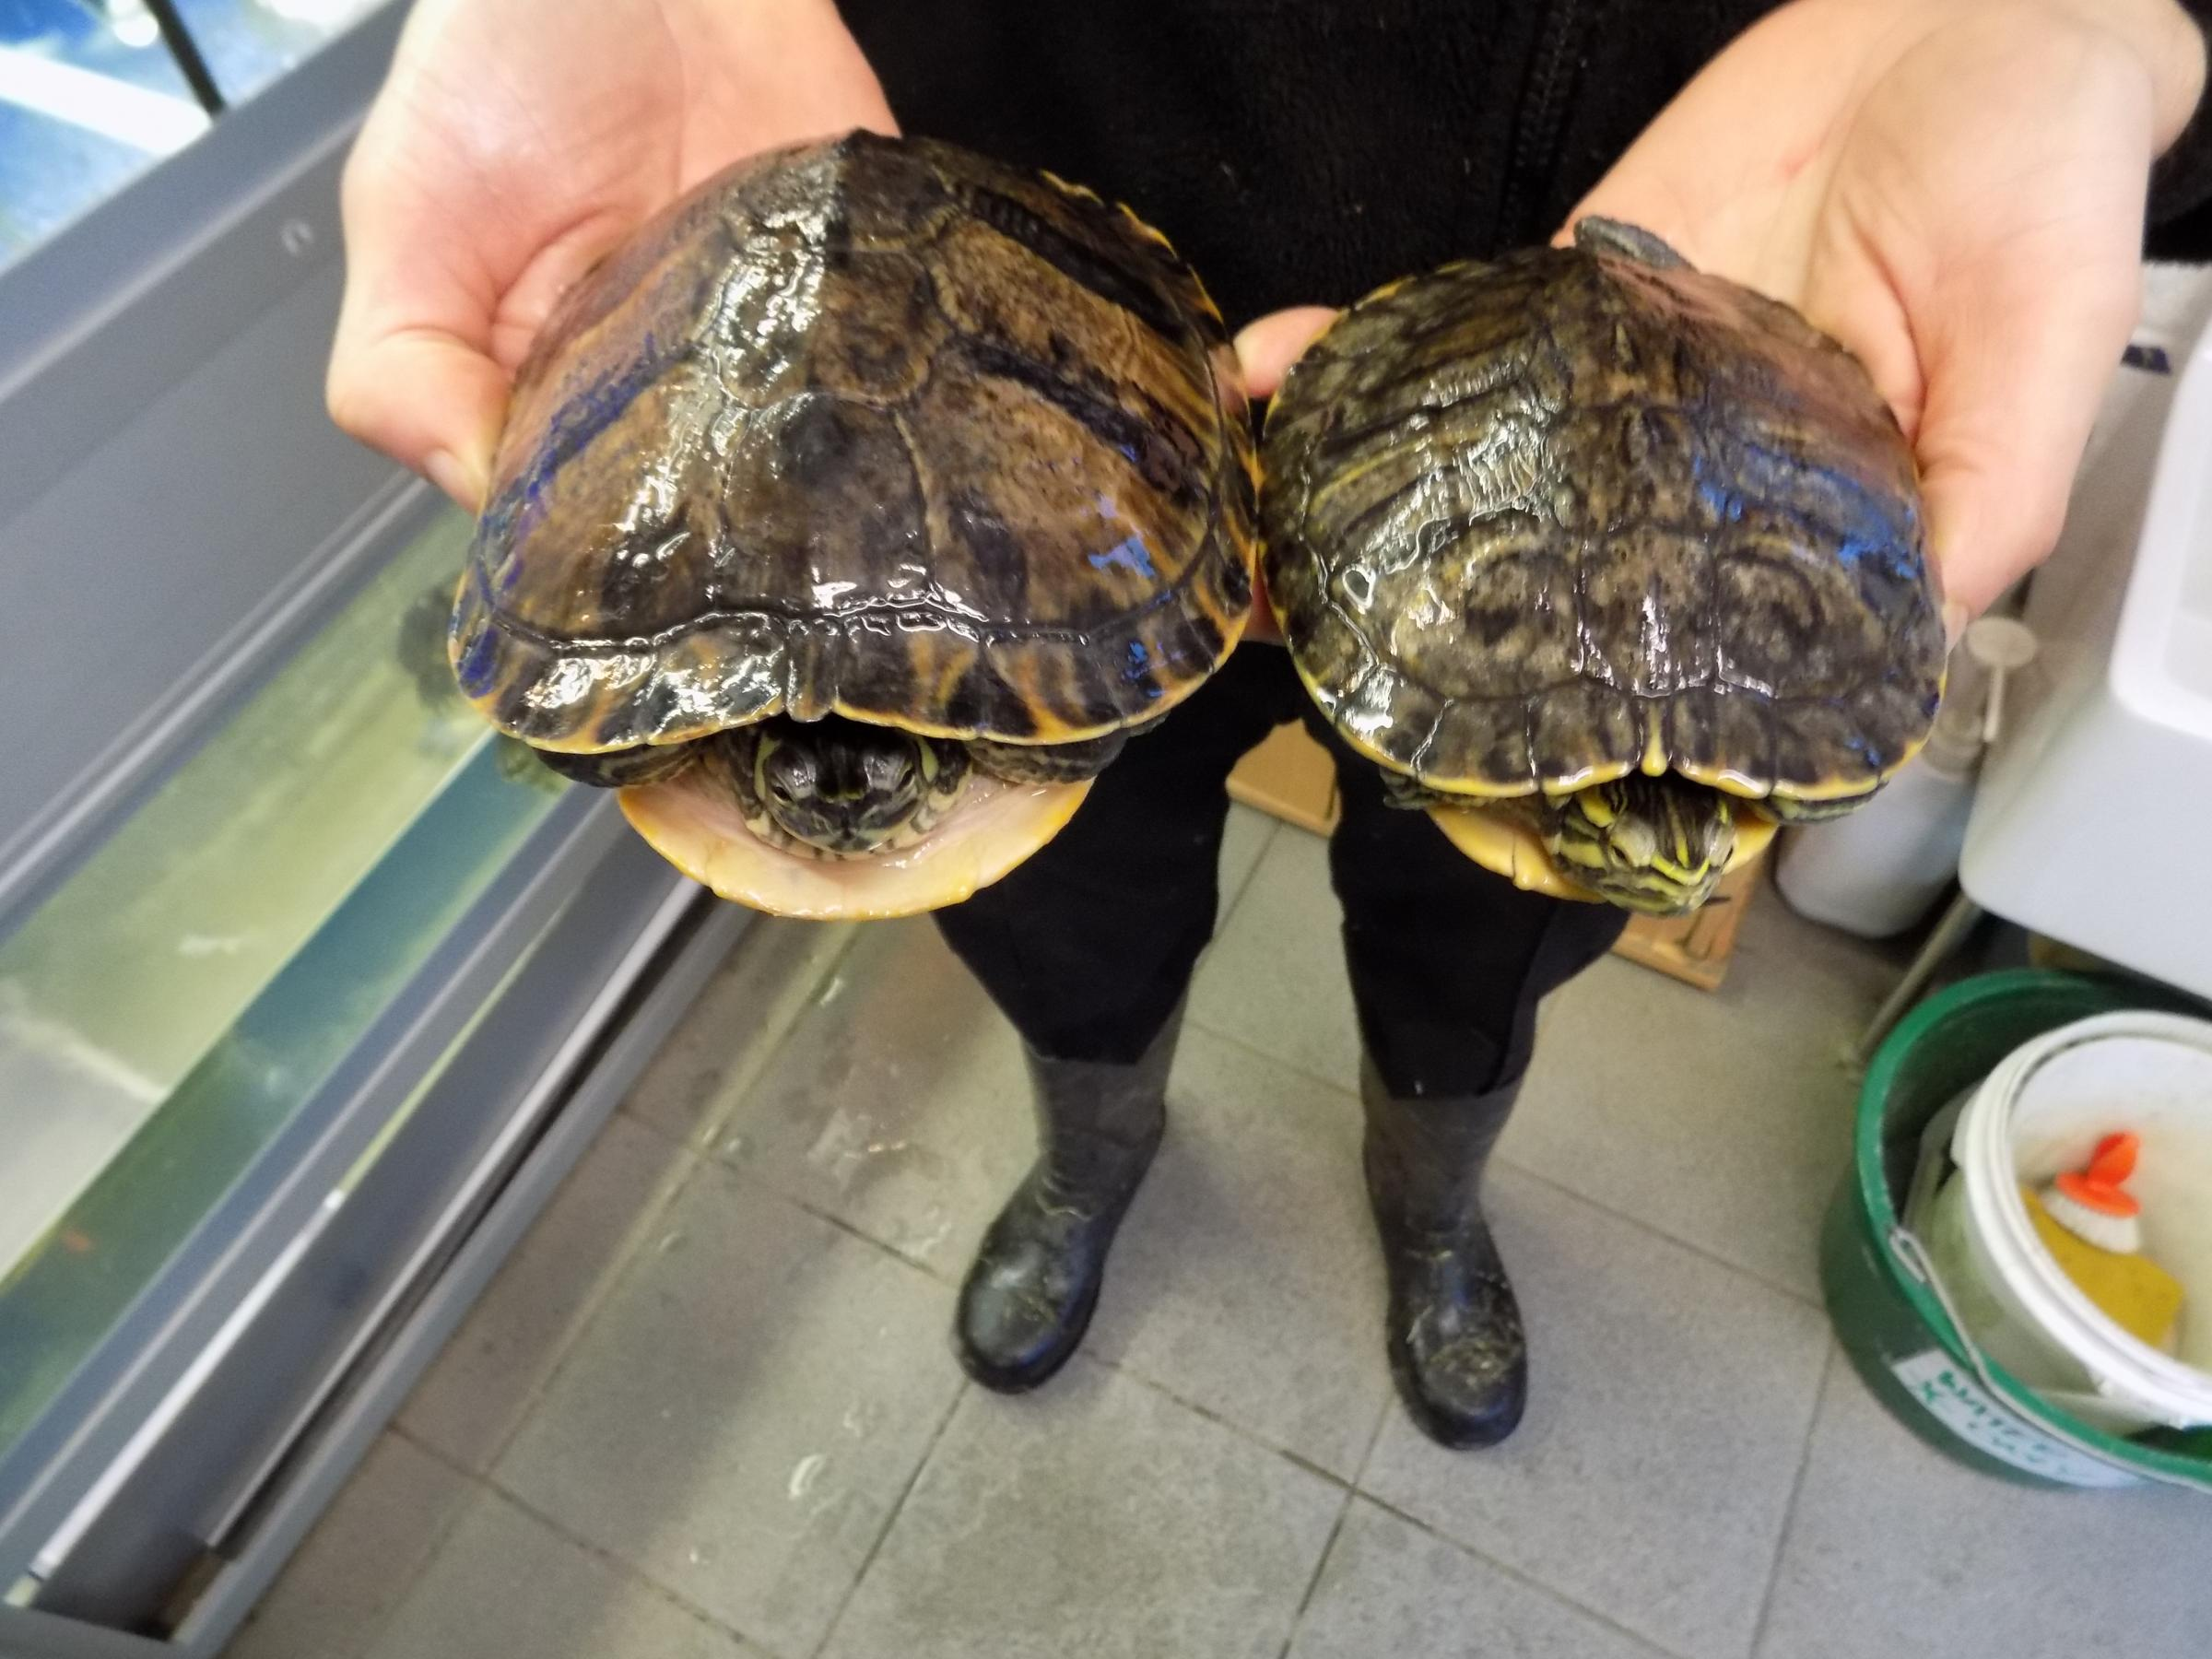 Turtles left abandoned in a plastic bag